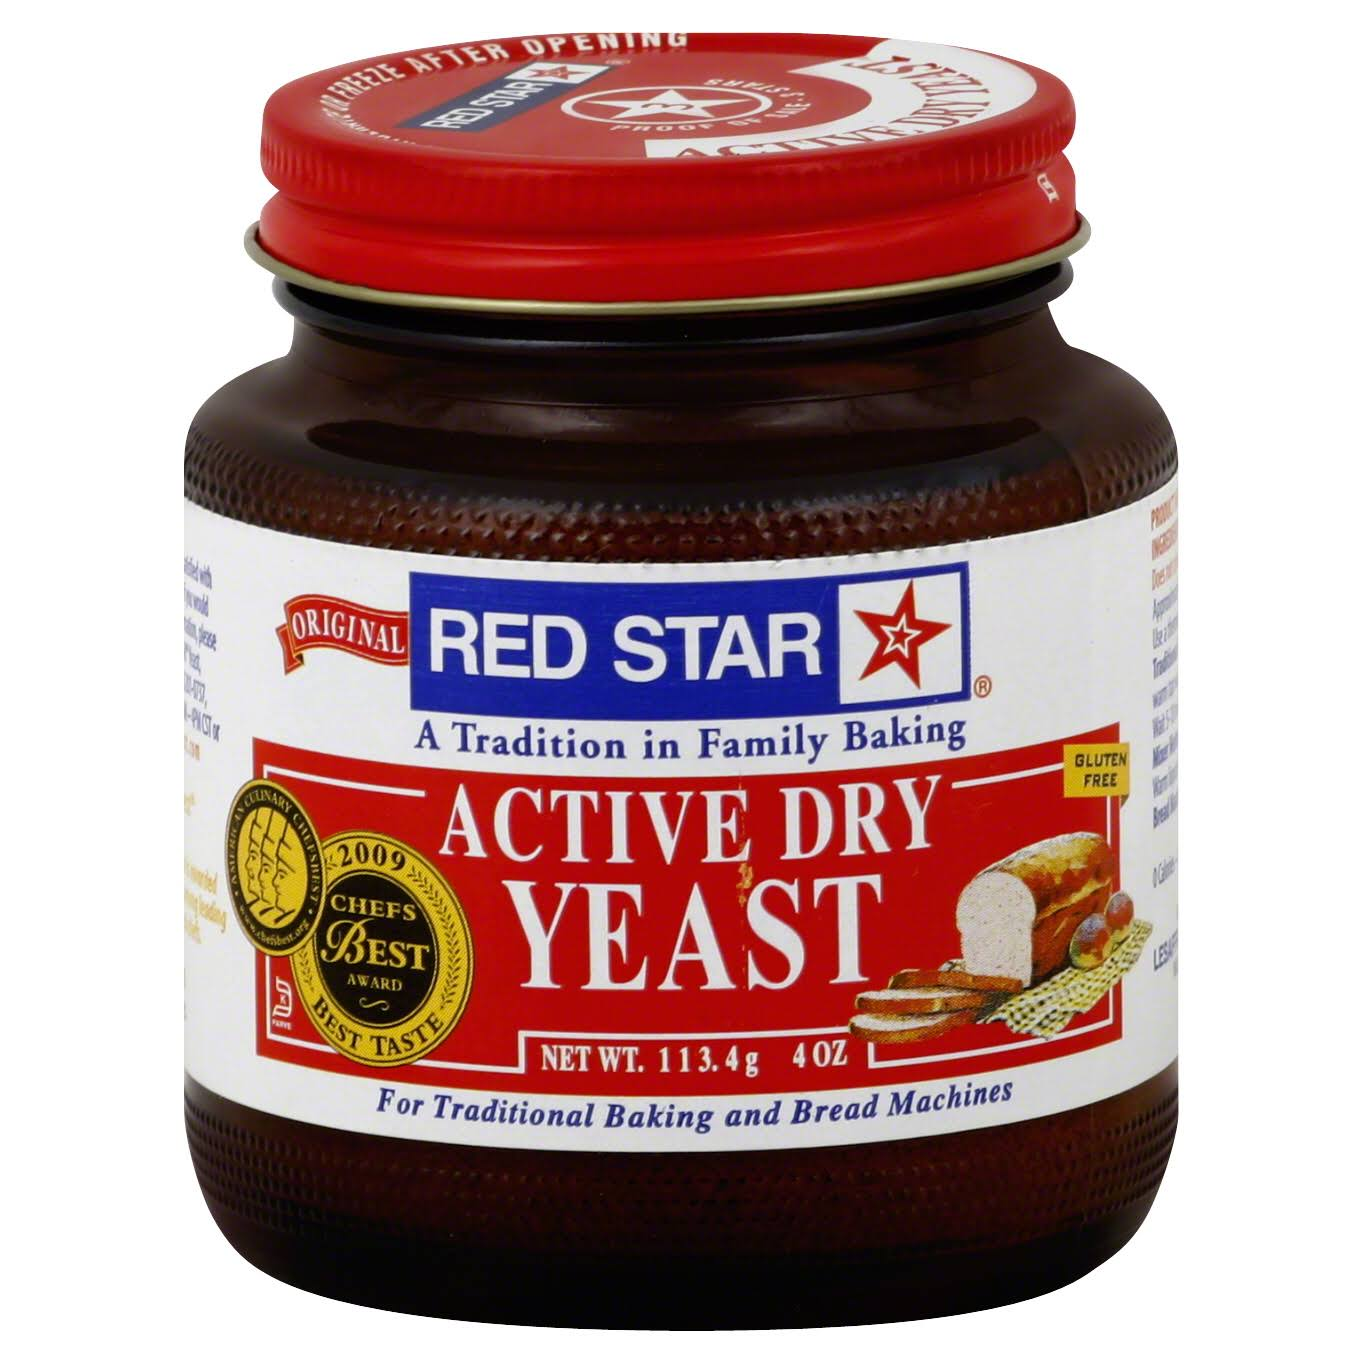 Red Star Original Active Dry Yeast - 4oz